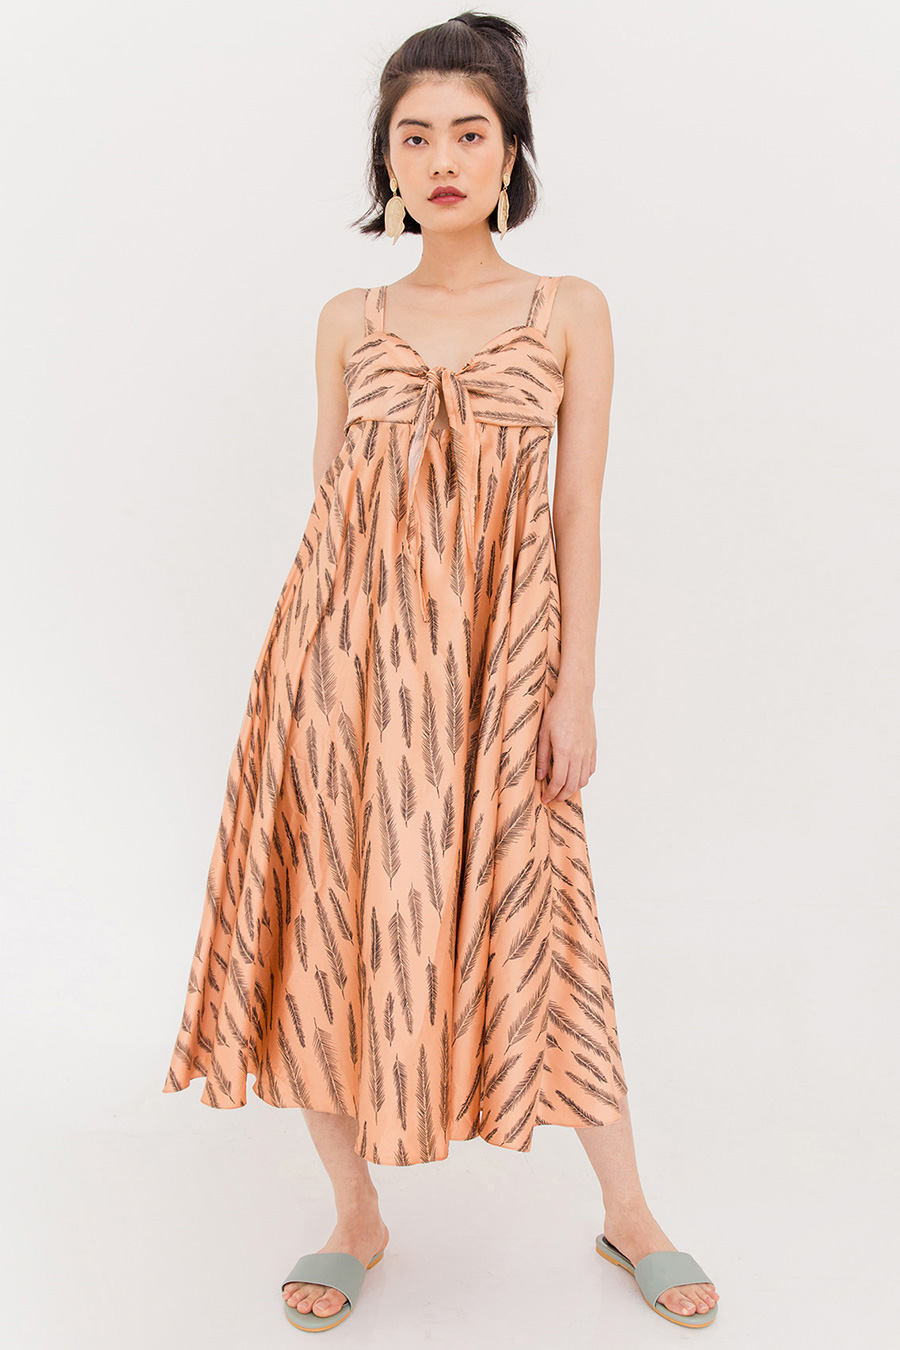 HARRIETTE MIDI DRESS - CANTALOUPE [BY MODPARADE]